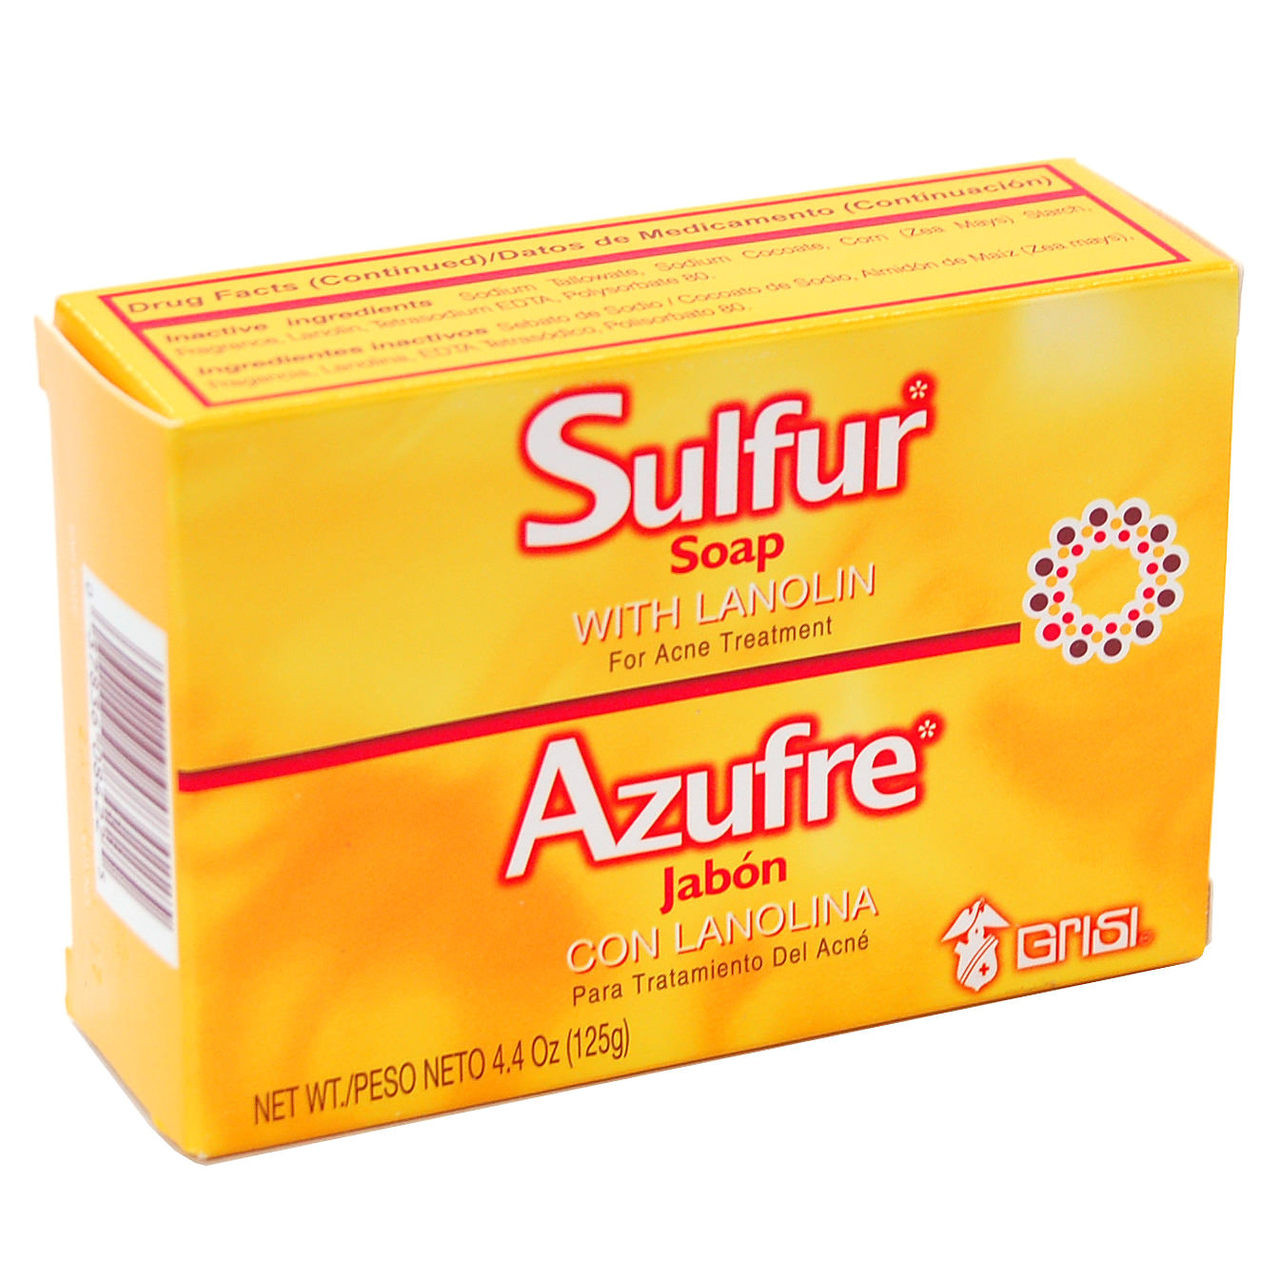 12 Pack New Grisi Sulfur Soap with Lanolin for Acne Prone Skin Clearing Additive (Salon Size) 1oz